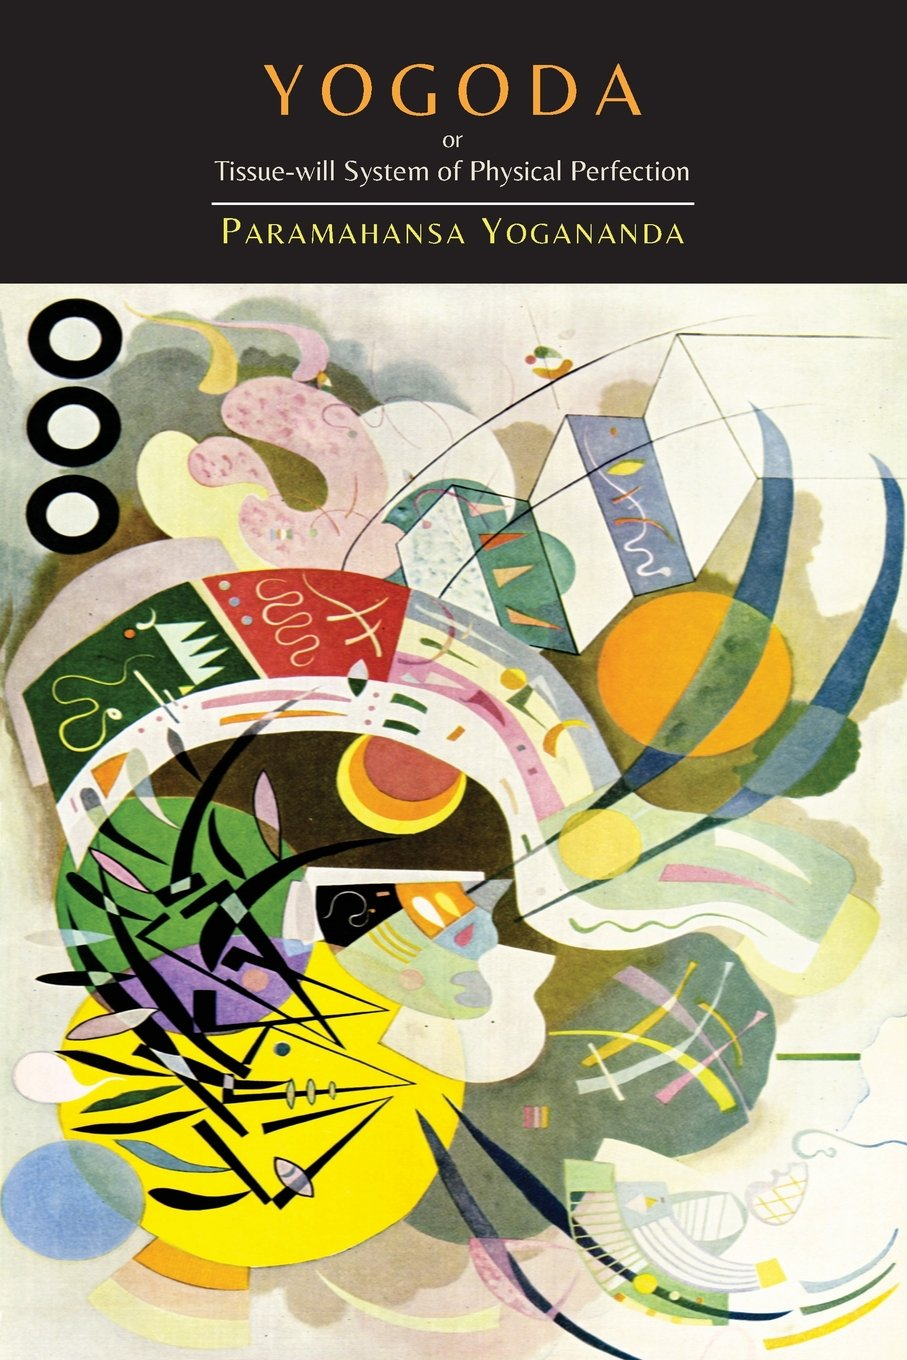 Download Yogoda: Or Tissue-Will System of Physical Perfection [Lessons I-III] pdf